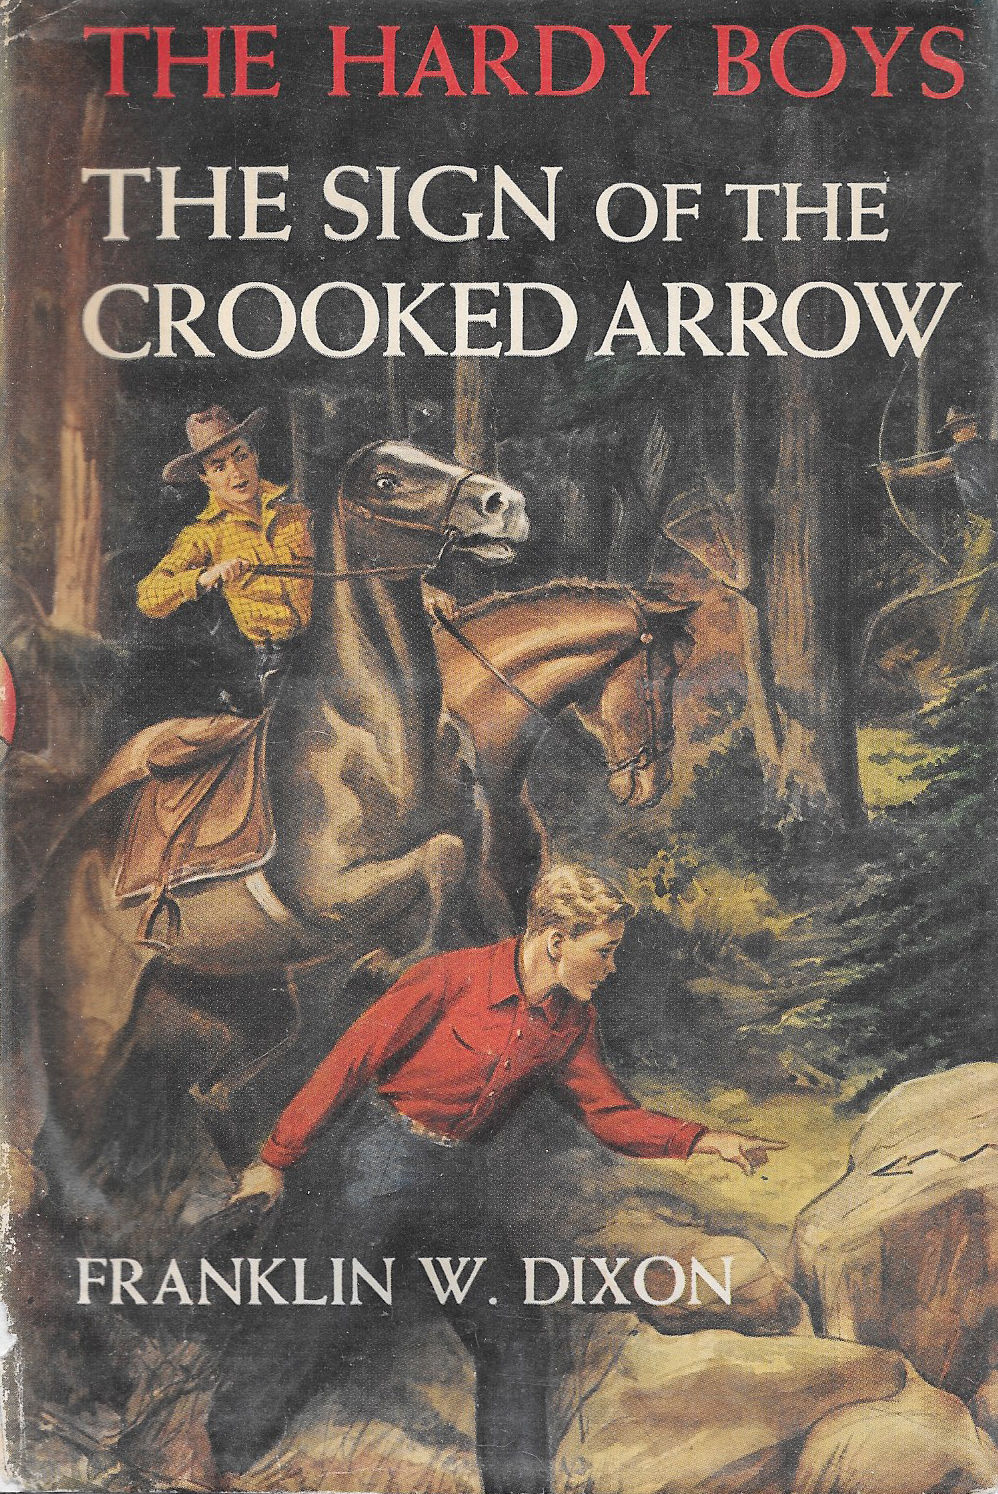 Primary image for THE HARDY BOYS: THE SIGN OF THE CROOKED ARROW (1949) XCNLT! Hardcover w/ JACKET!